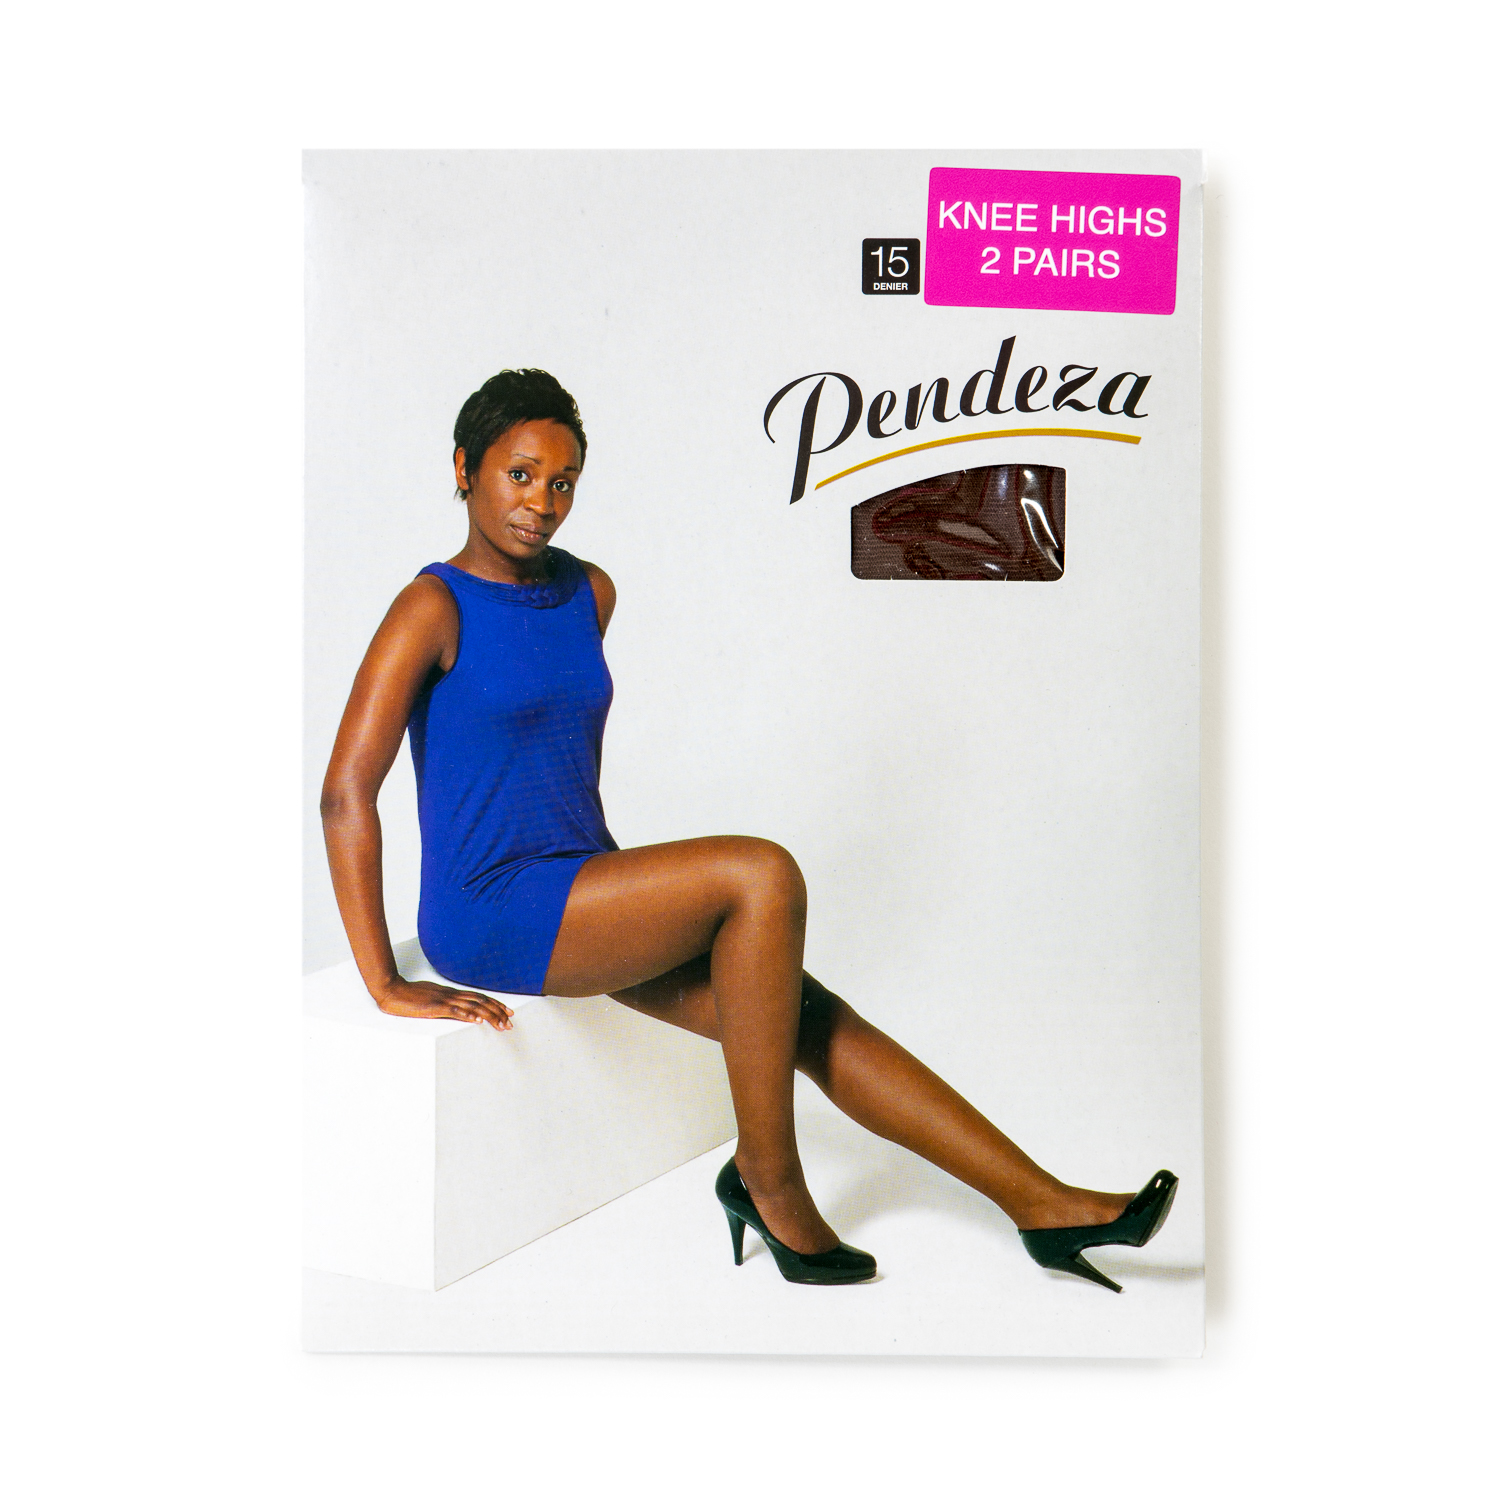 a847e3156d371 Tone 30 – Pendeza Toned Collection sheer Knee Highs For Medium Darker Skin  Tones | Pendeza Pantyhose